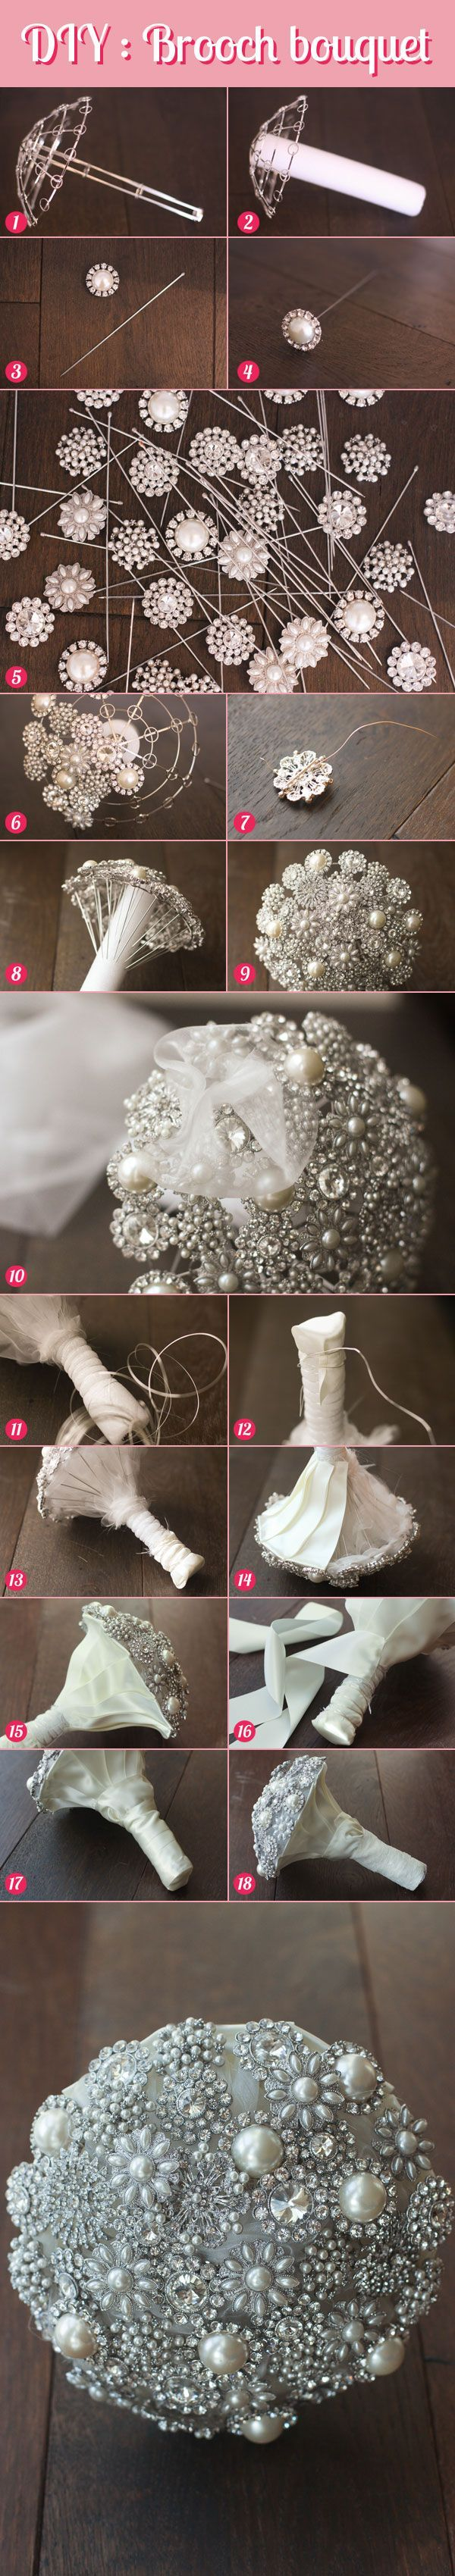 Wedding DIY - Brooch bouquet tutorial